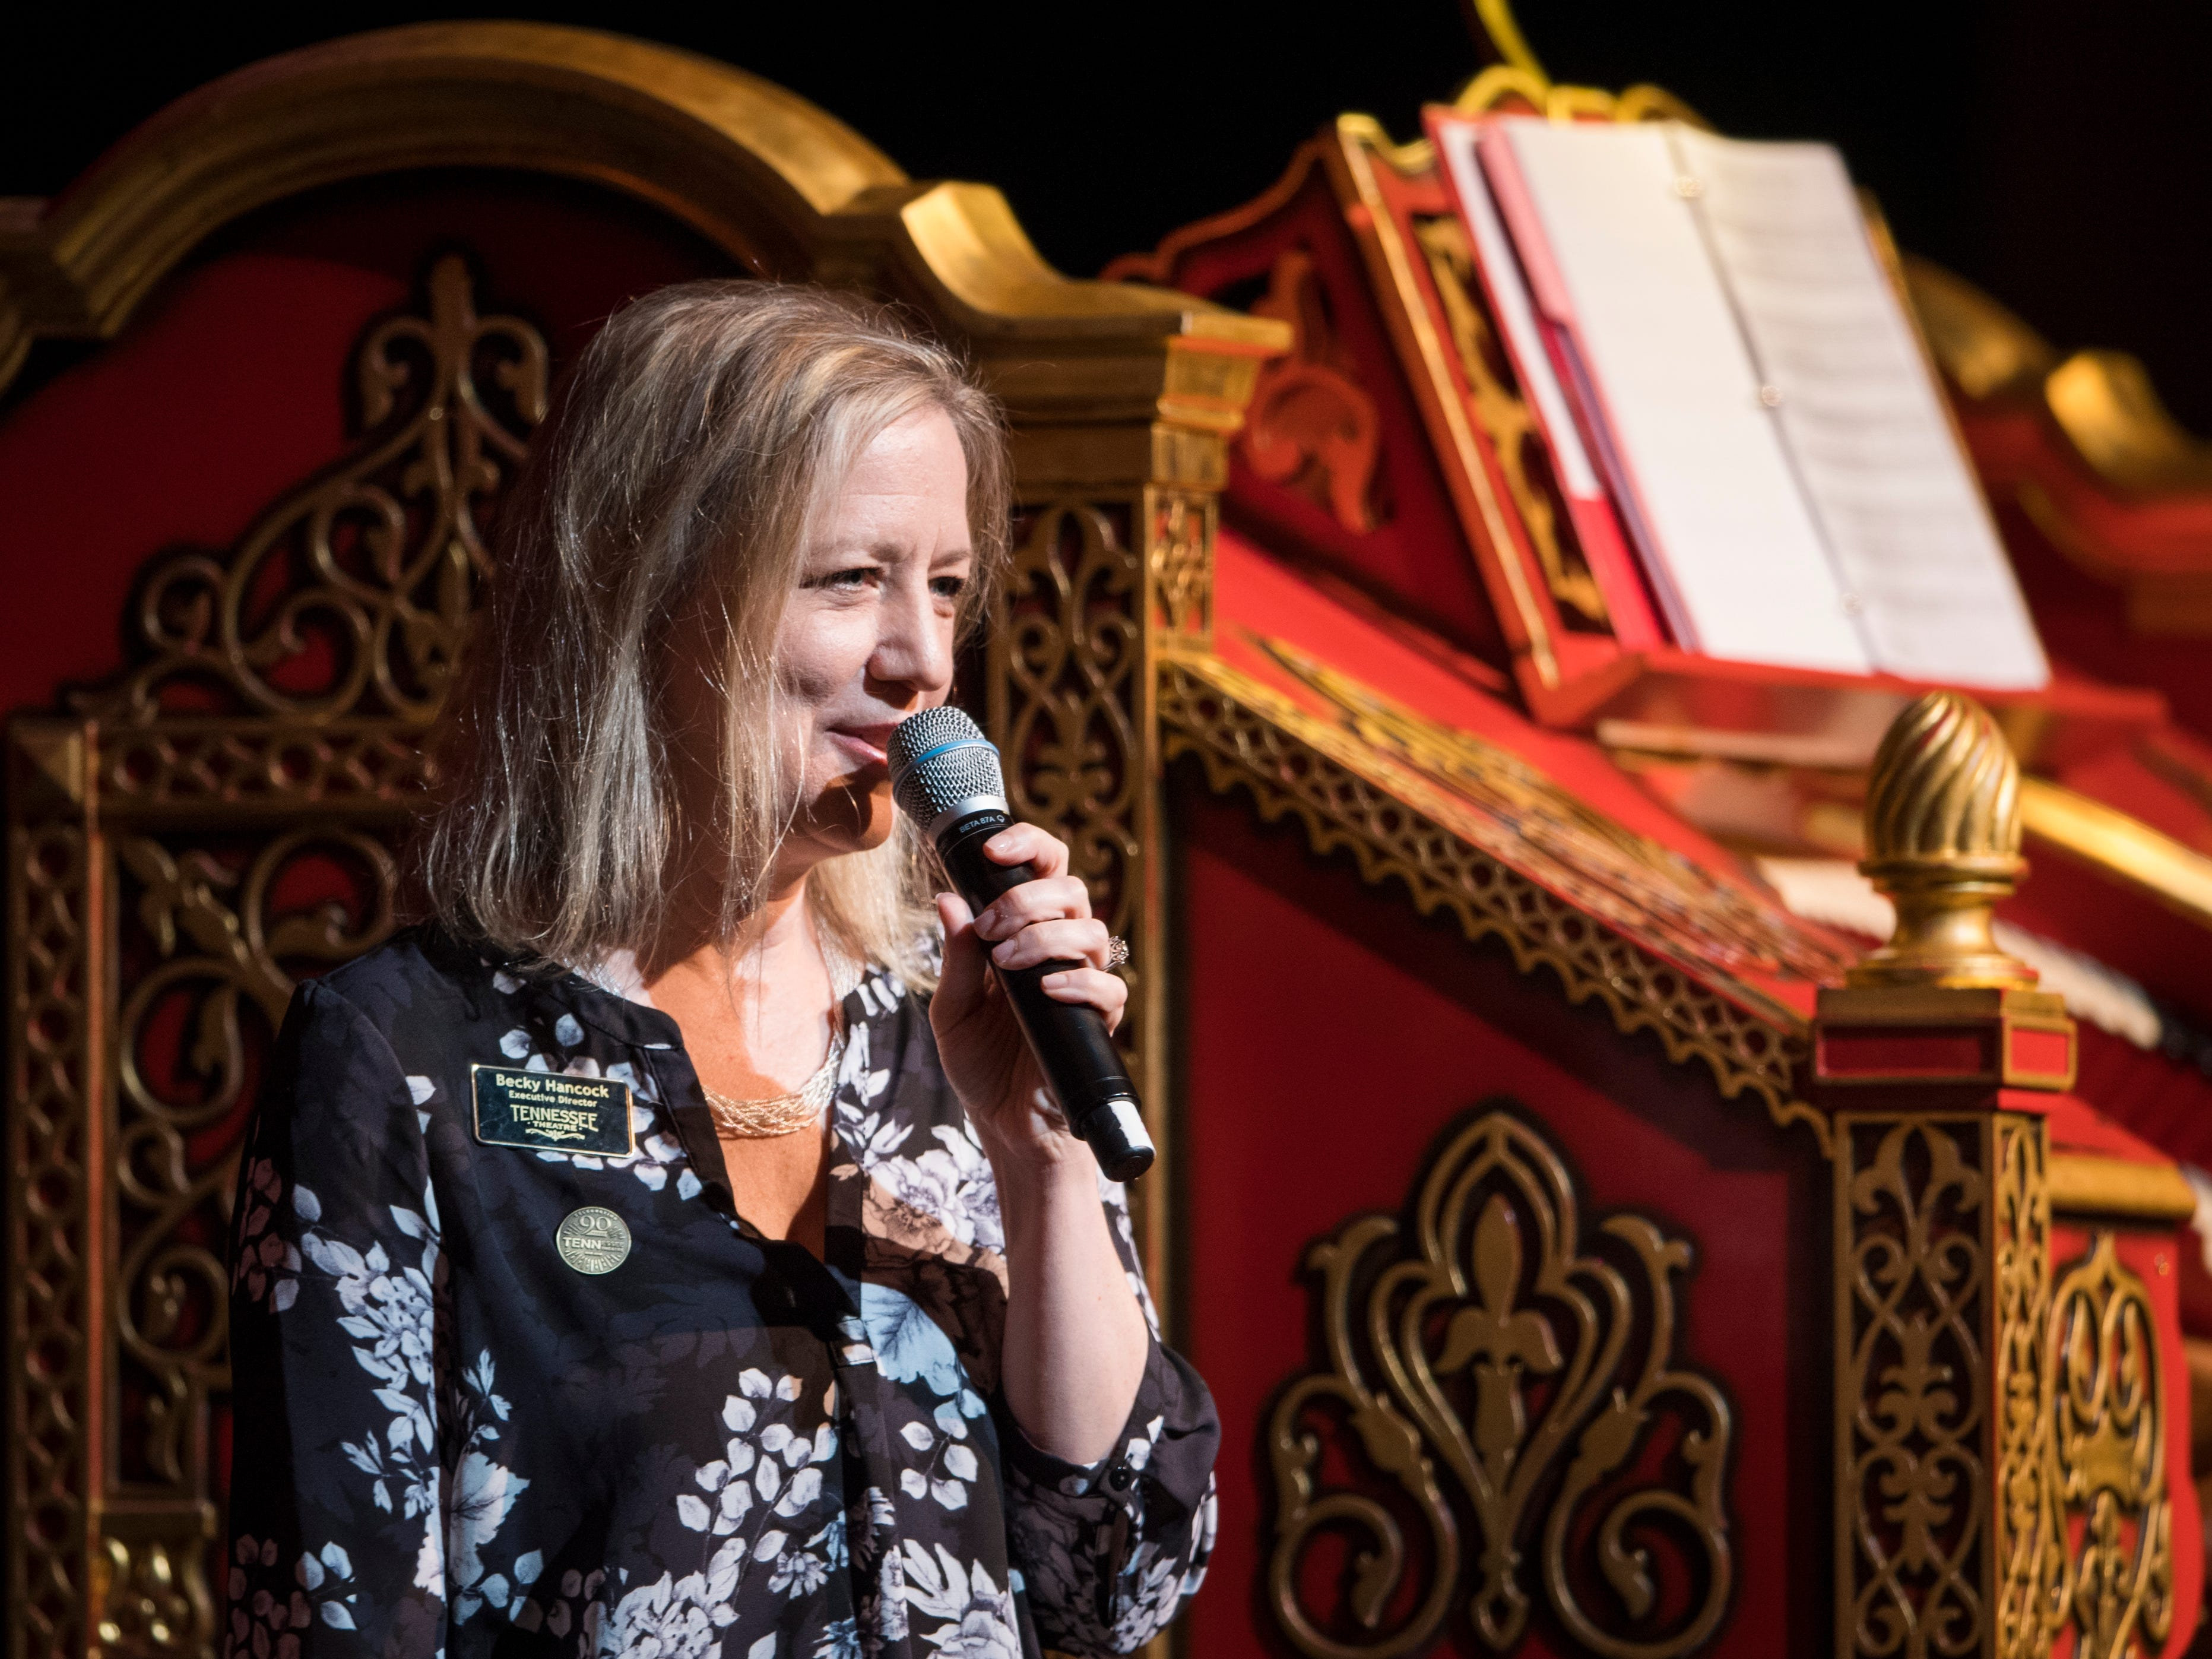 Tennessee Theatre executive director Becky Hancock speaks during Mighty Musical Monday celebrating the retirement of Dr. Bill Snyder at the downtown Knoxville theatre on Monday, October 1, 2018. This particular Mighty Musical Monday also landed on the Tennessee Theatre's 90th anniversary.